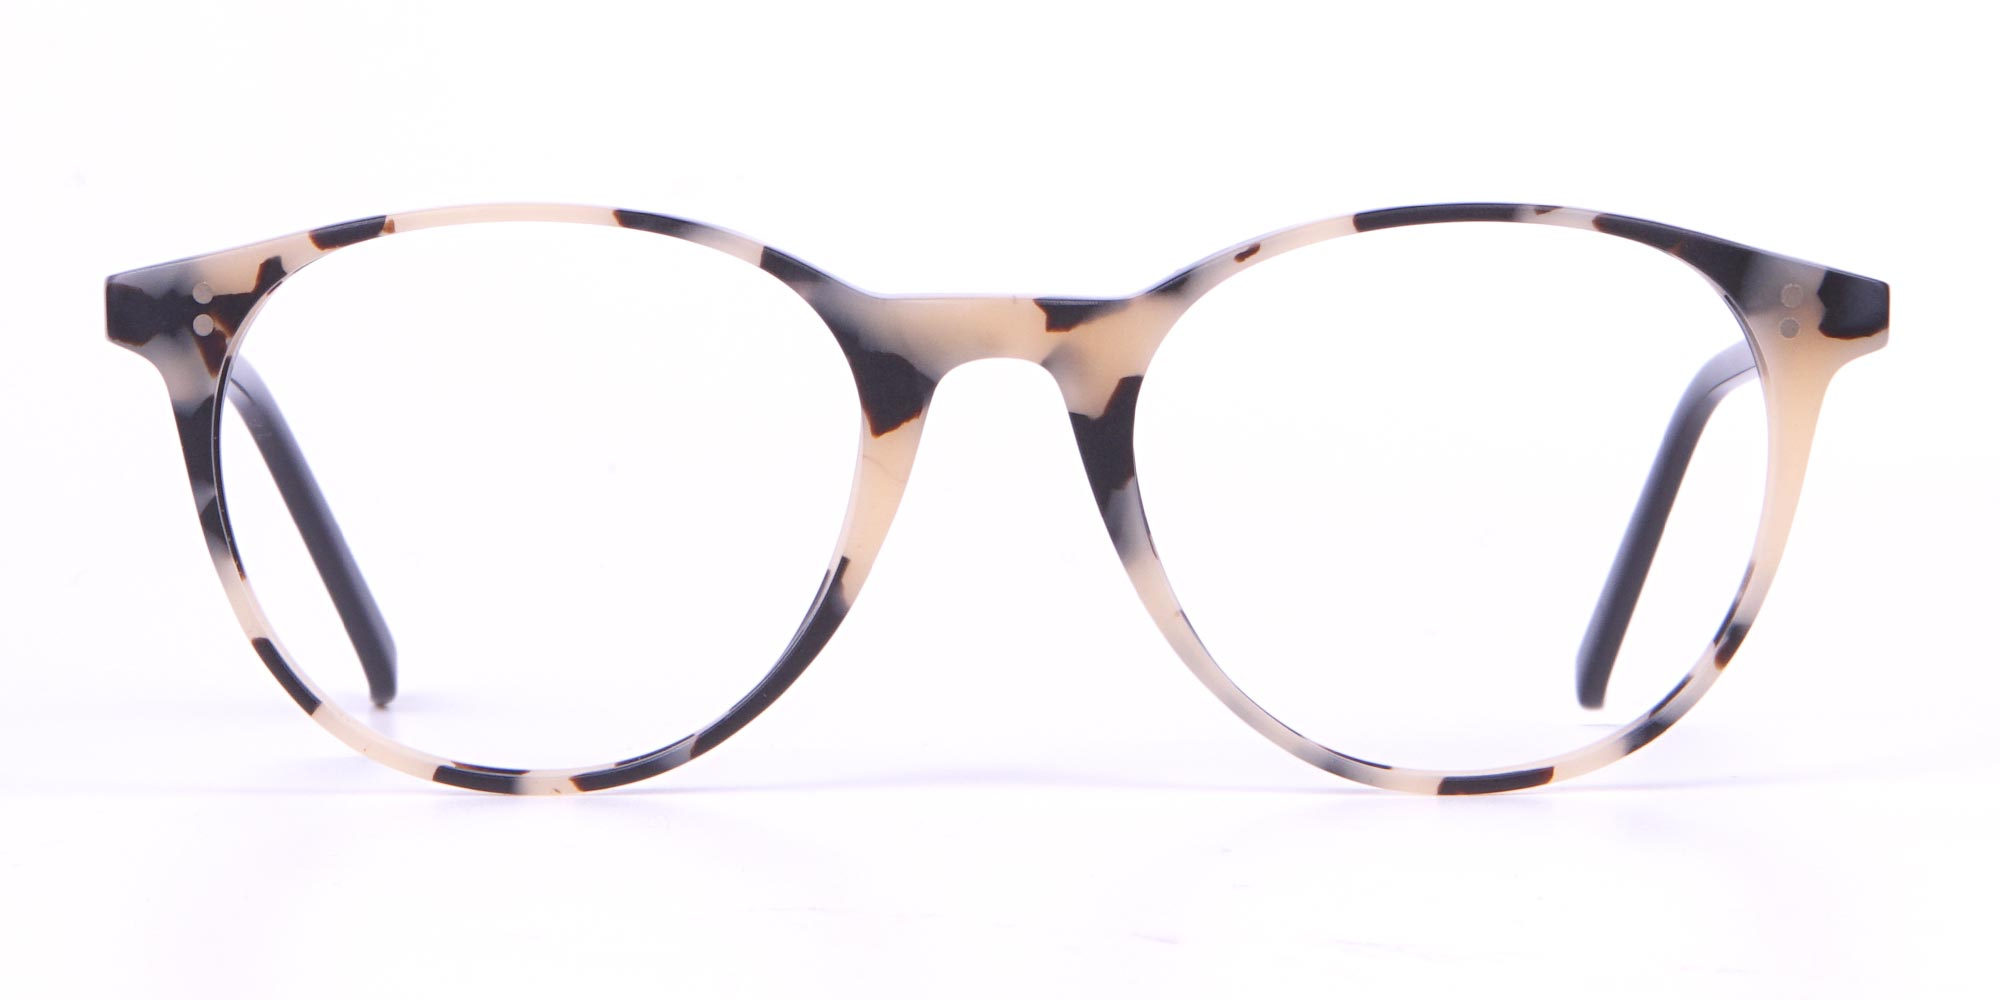 Hackett Cream Tortoise Round Glasses